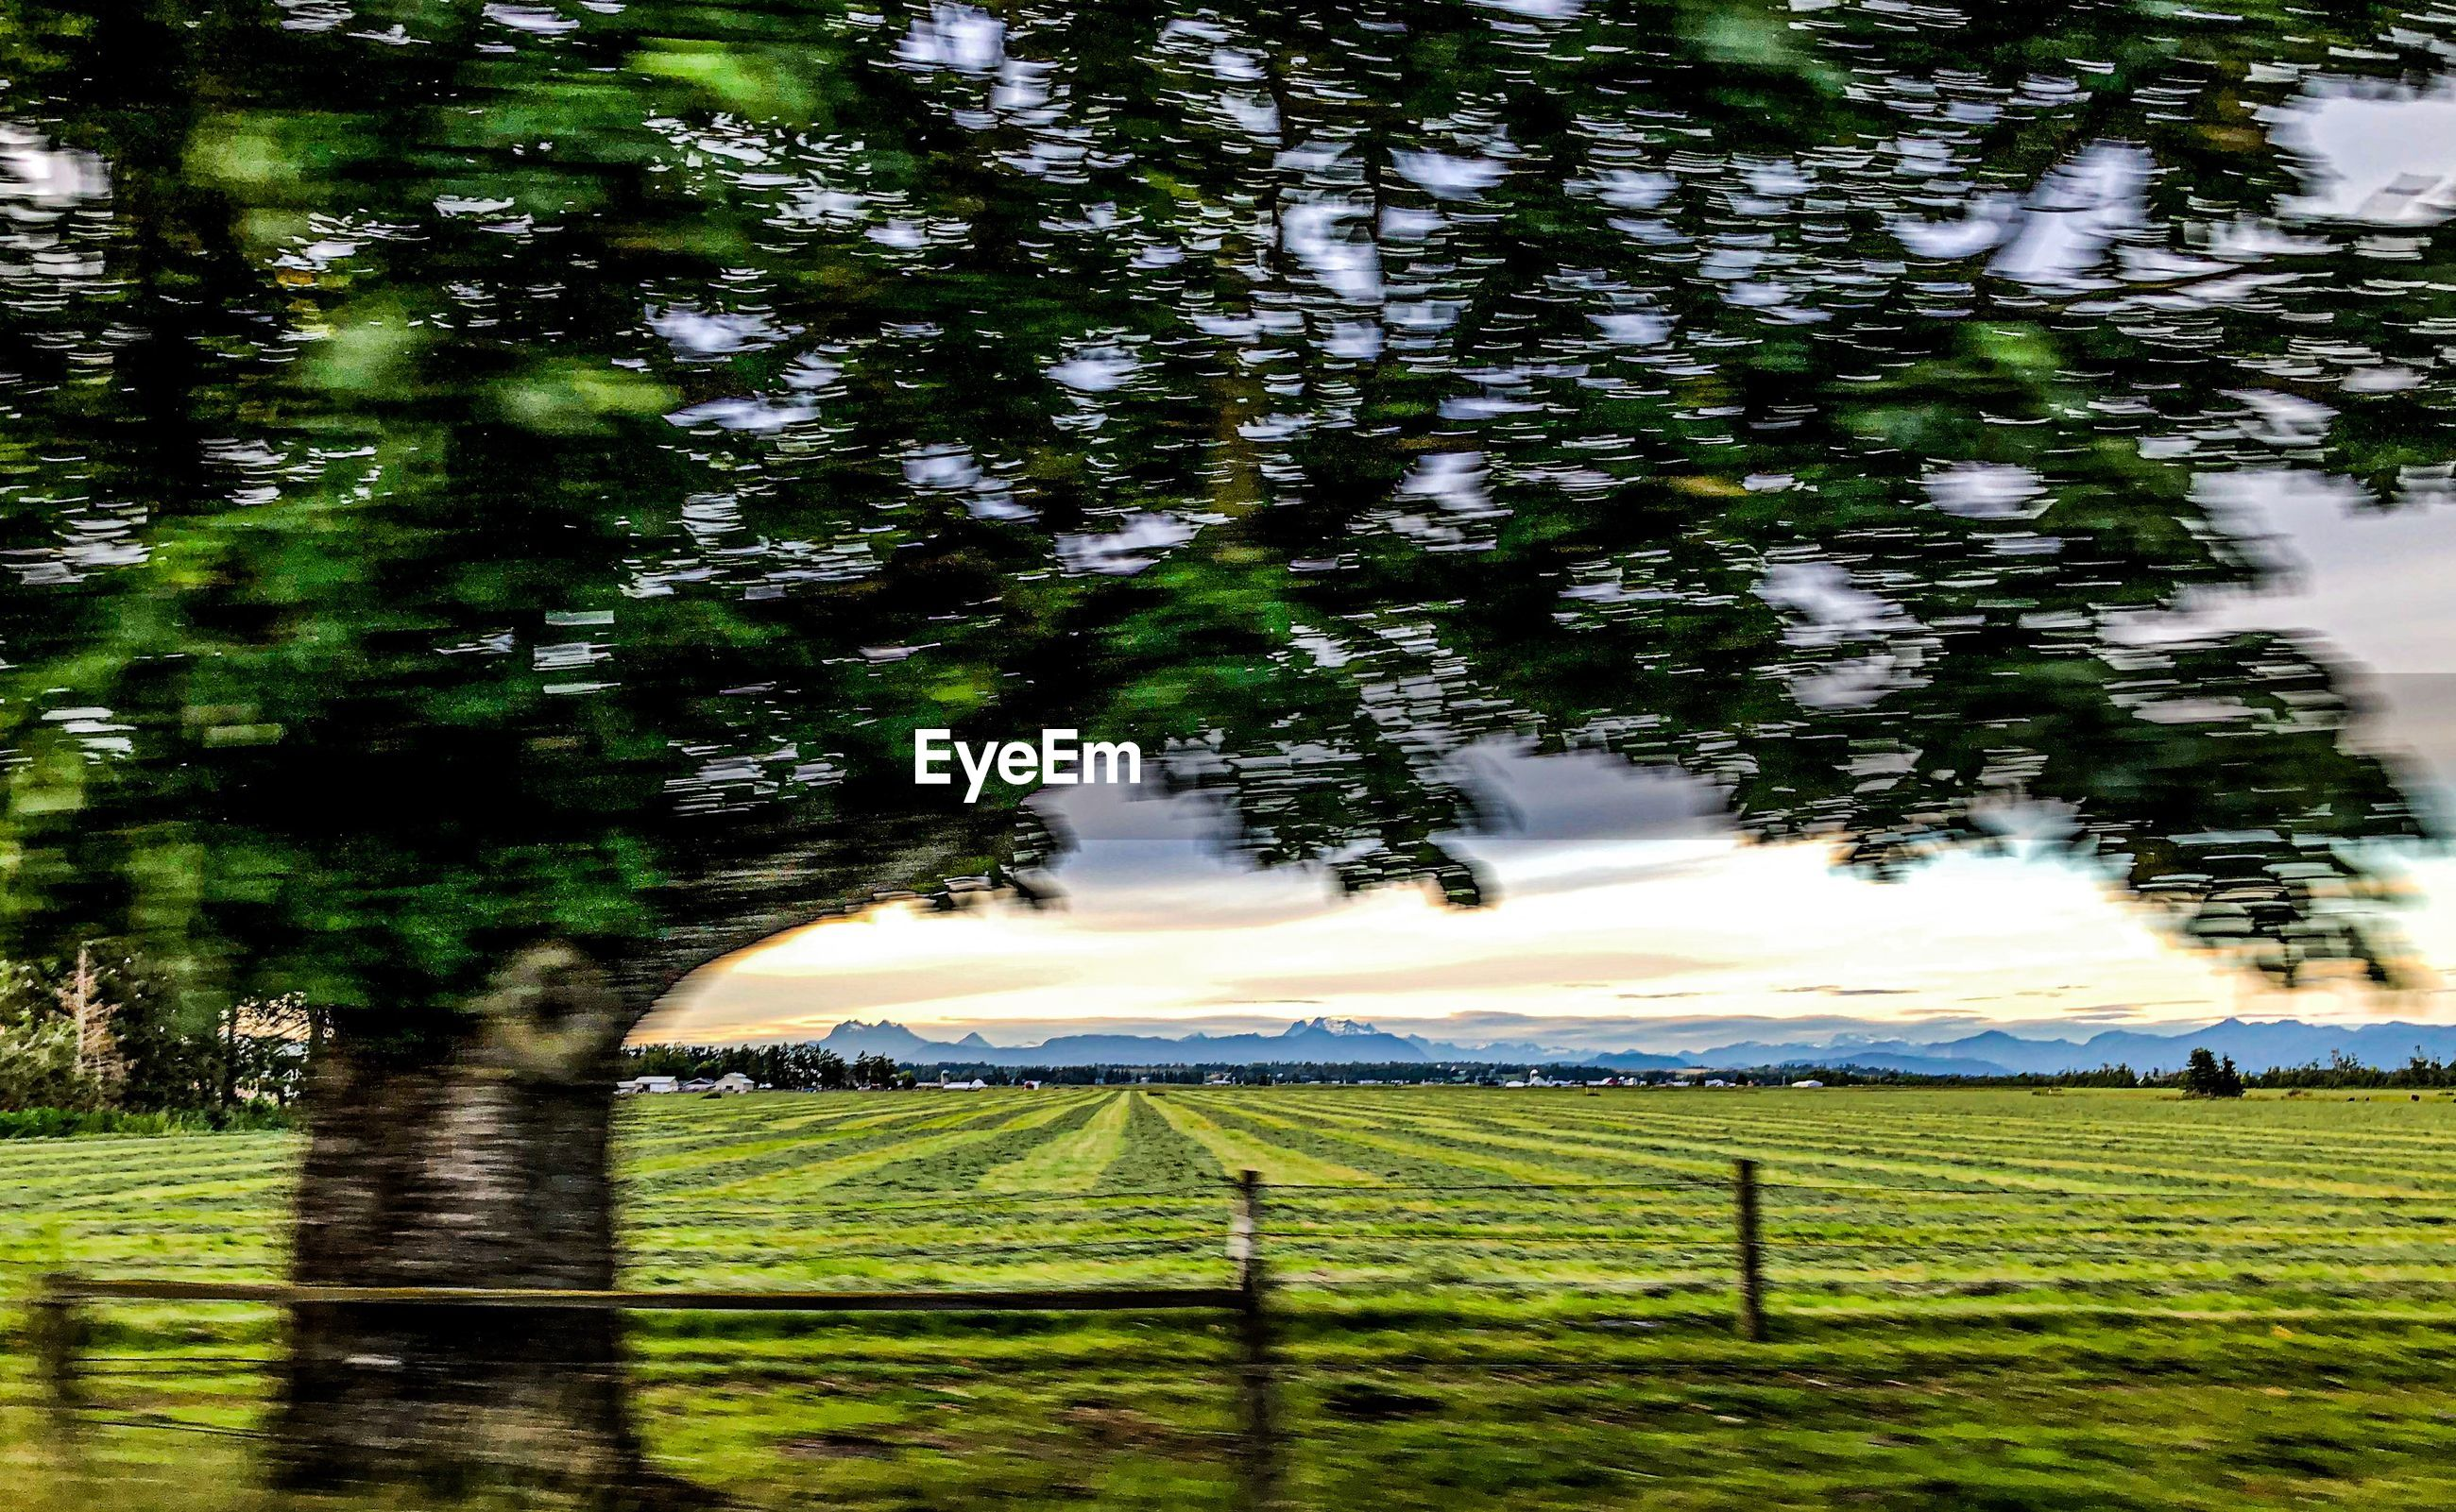 plant, tree, land, green color, beauty in nature, nature, growth, field, tranquility, no people, tranquil scene, day, landscape, environment, scenics - nature, grass, sky, barrier, outdoors, fence